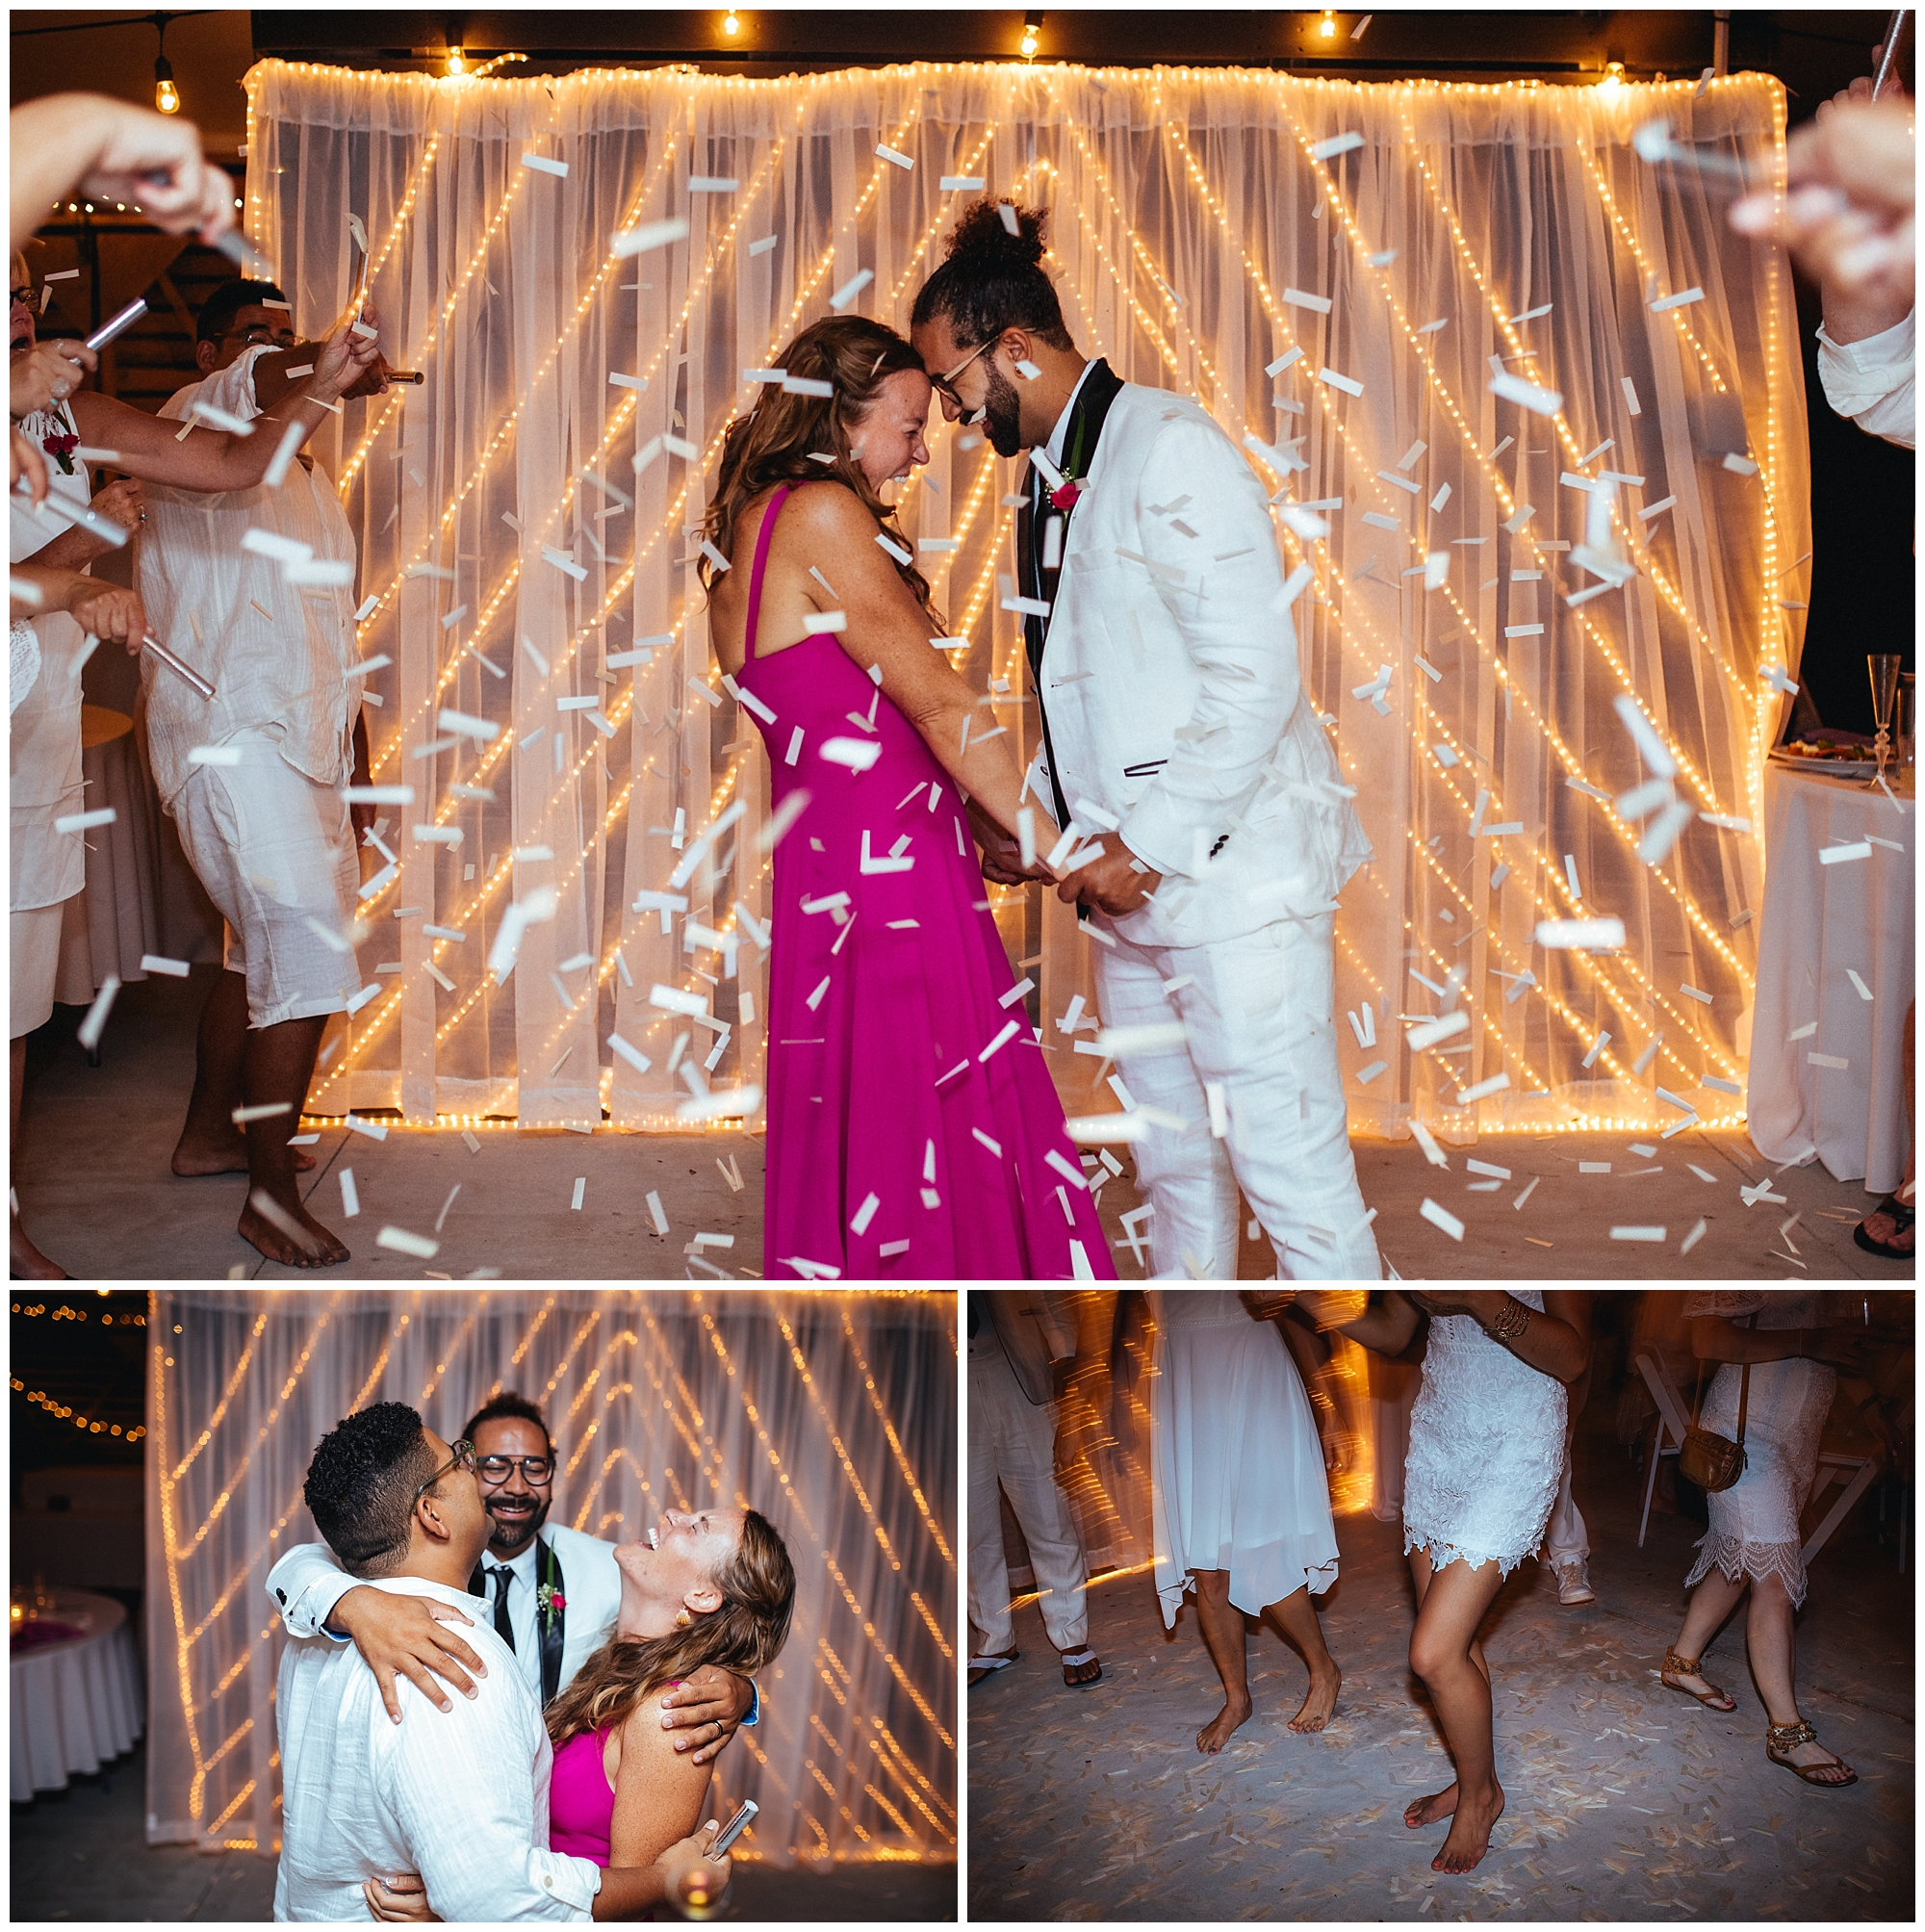 unique-beach-wedding27.jpg